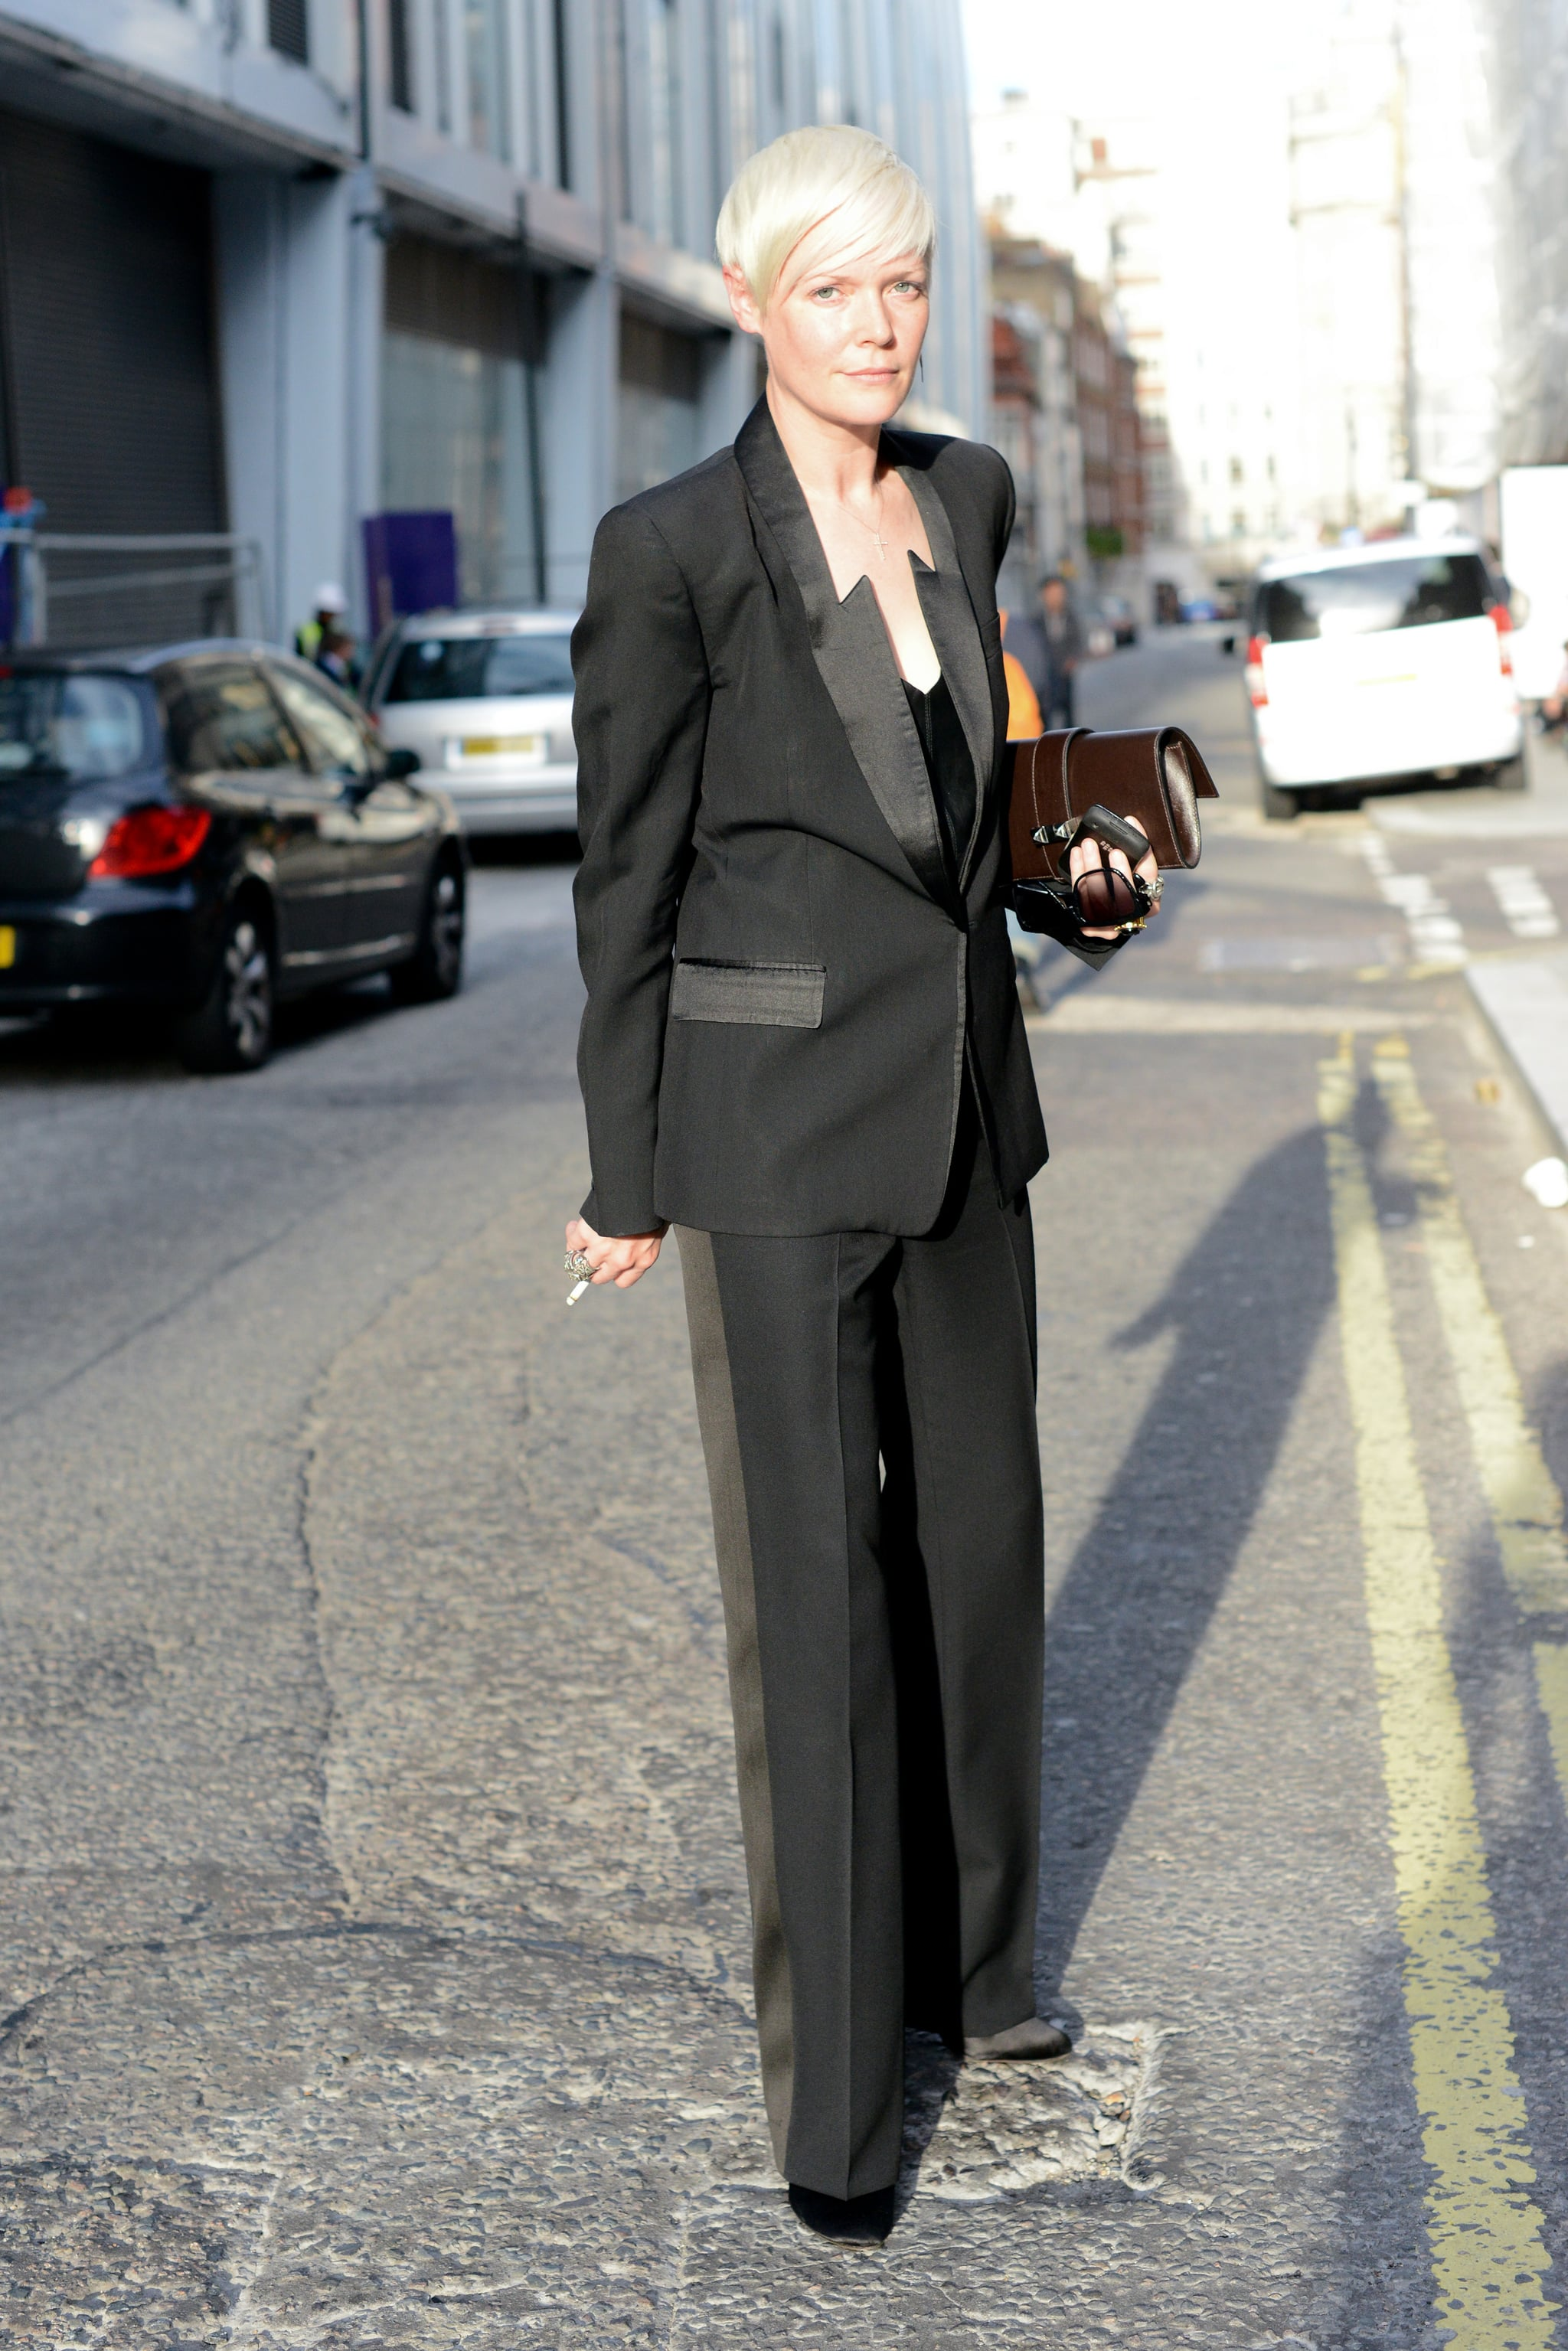 Elle style director Kate Lanphear dressed in her signature all-black uniform, with a tuxedo-style edge this time around.